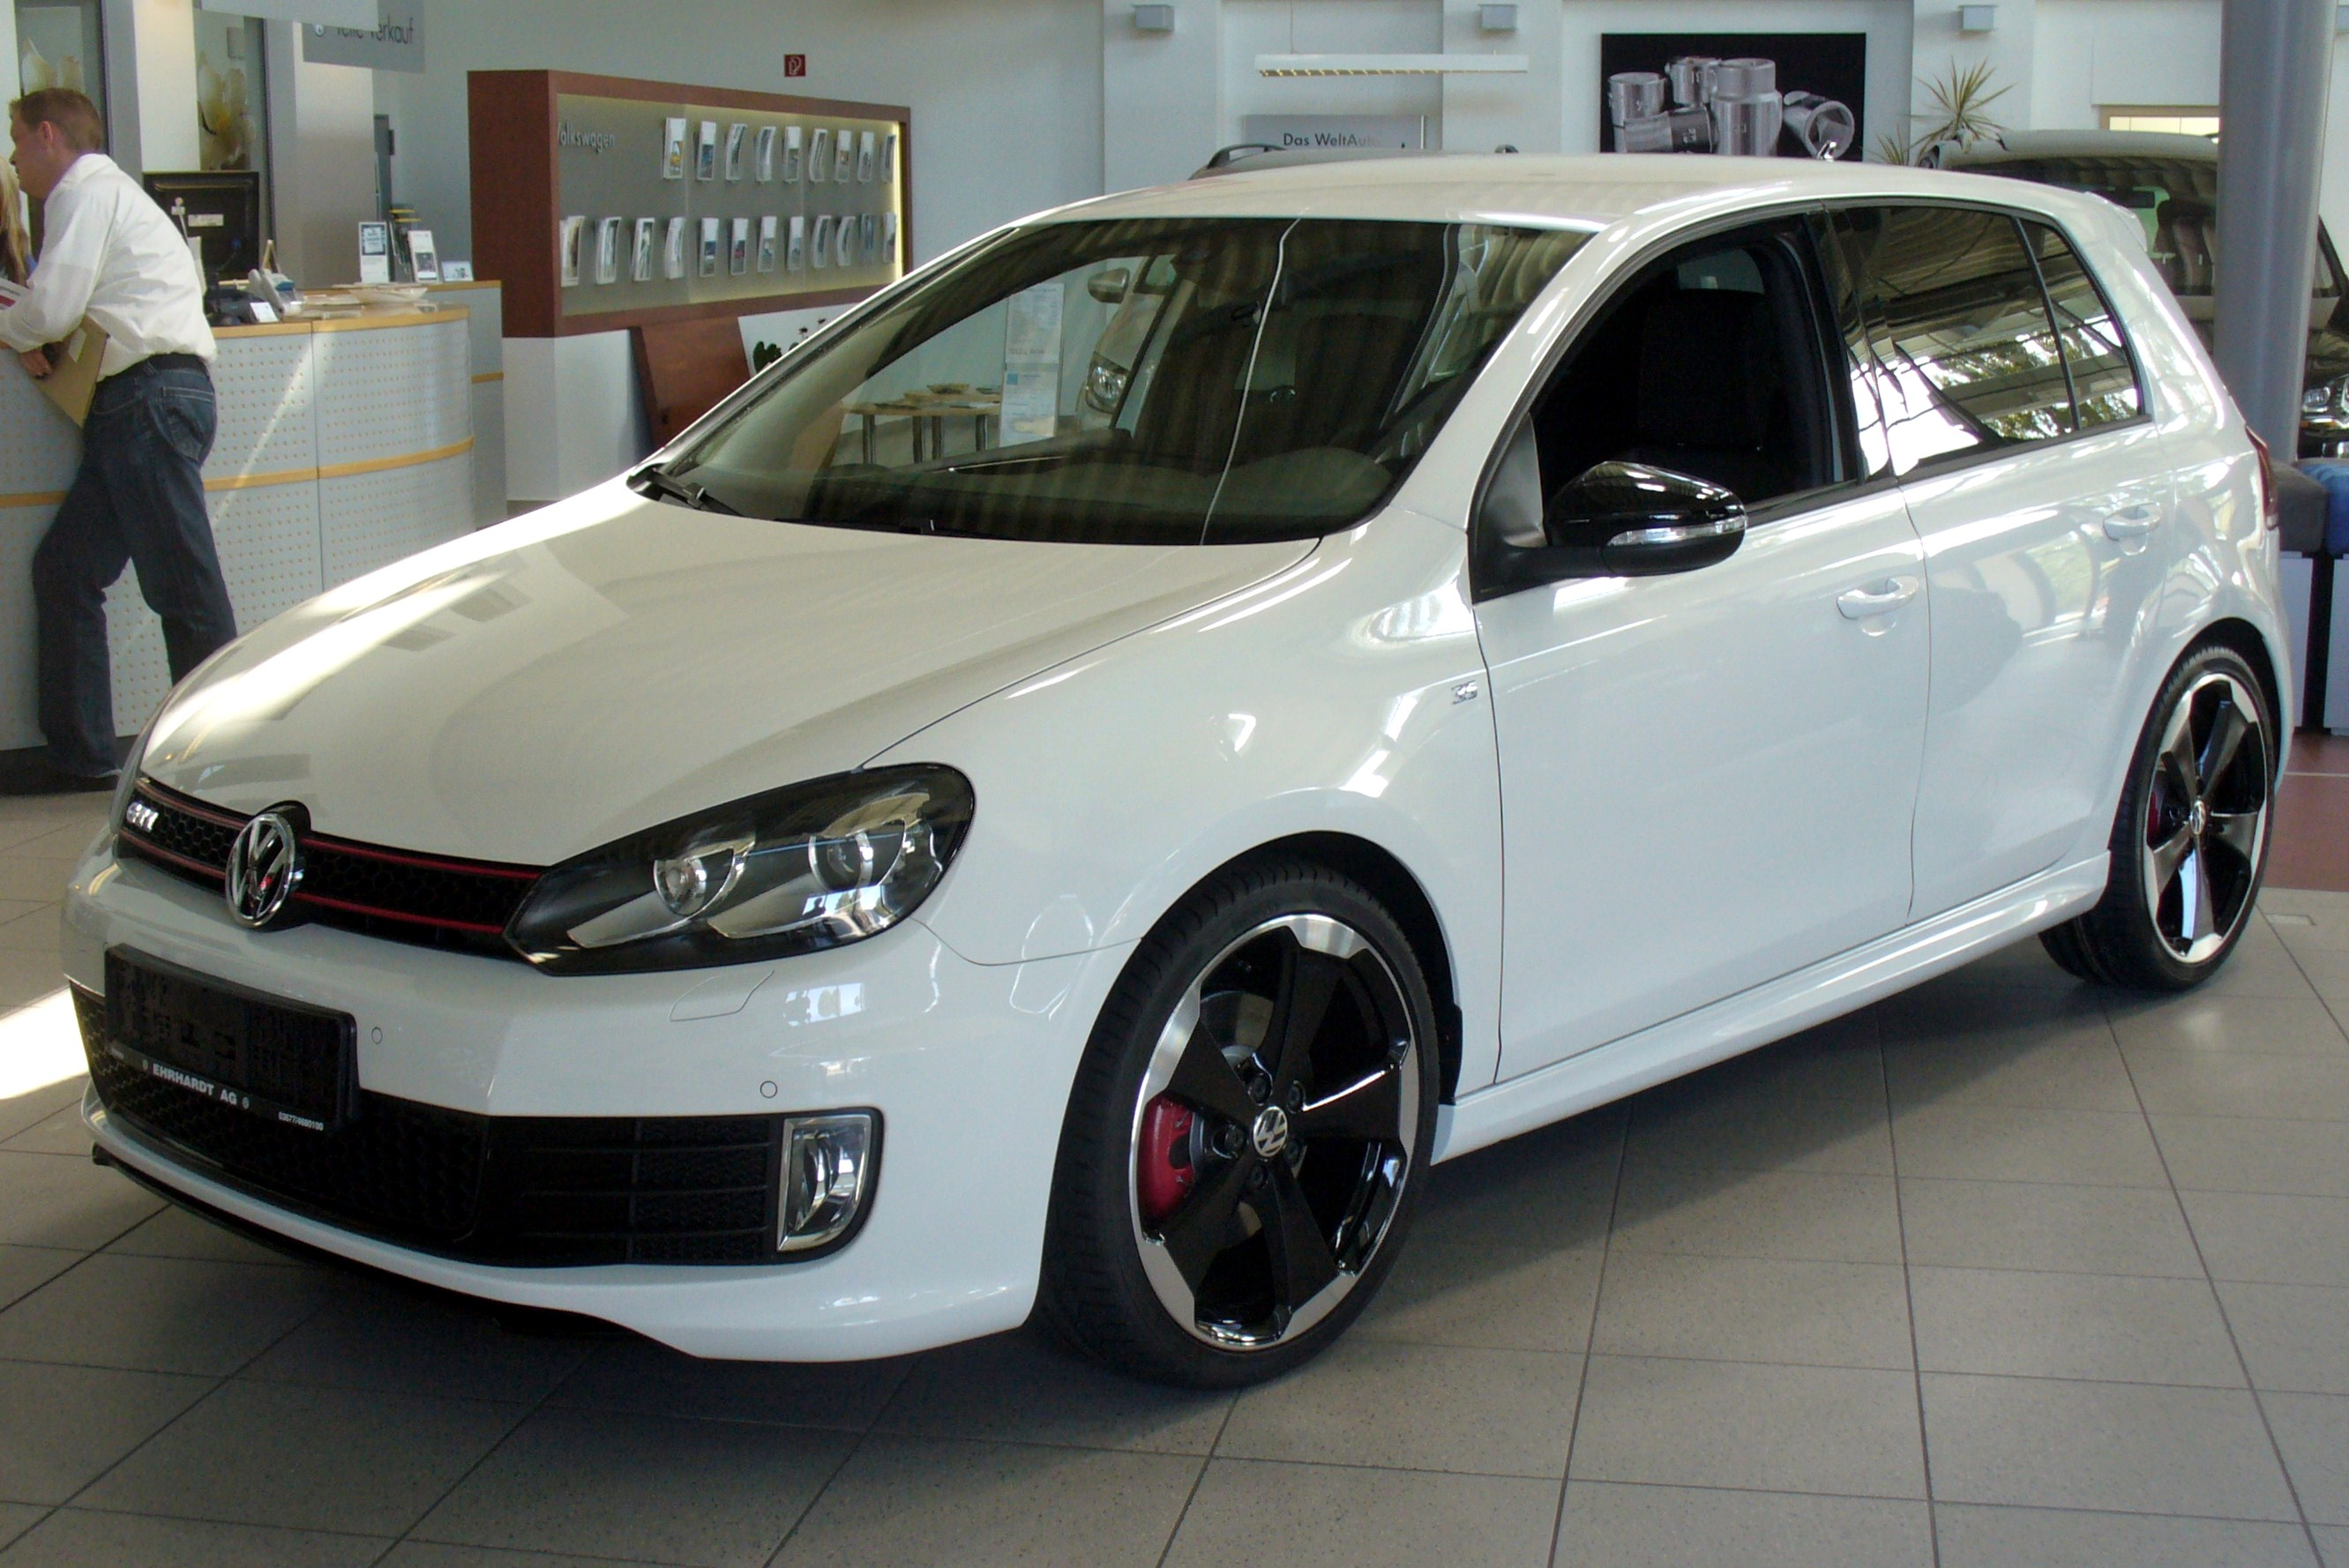 vw golf gti edition 35 history photos on better parts ltd. Black Bedroom Furniture Sets. Home Design Ideas